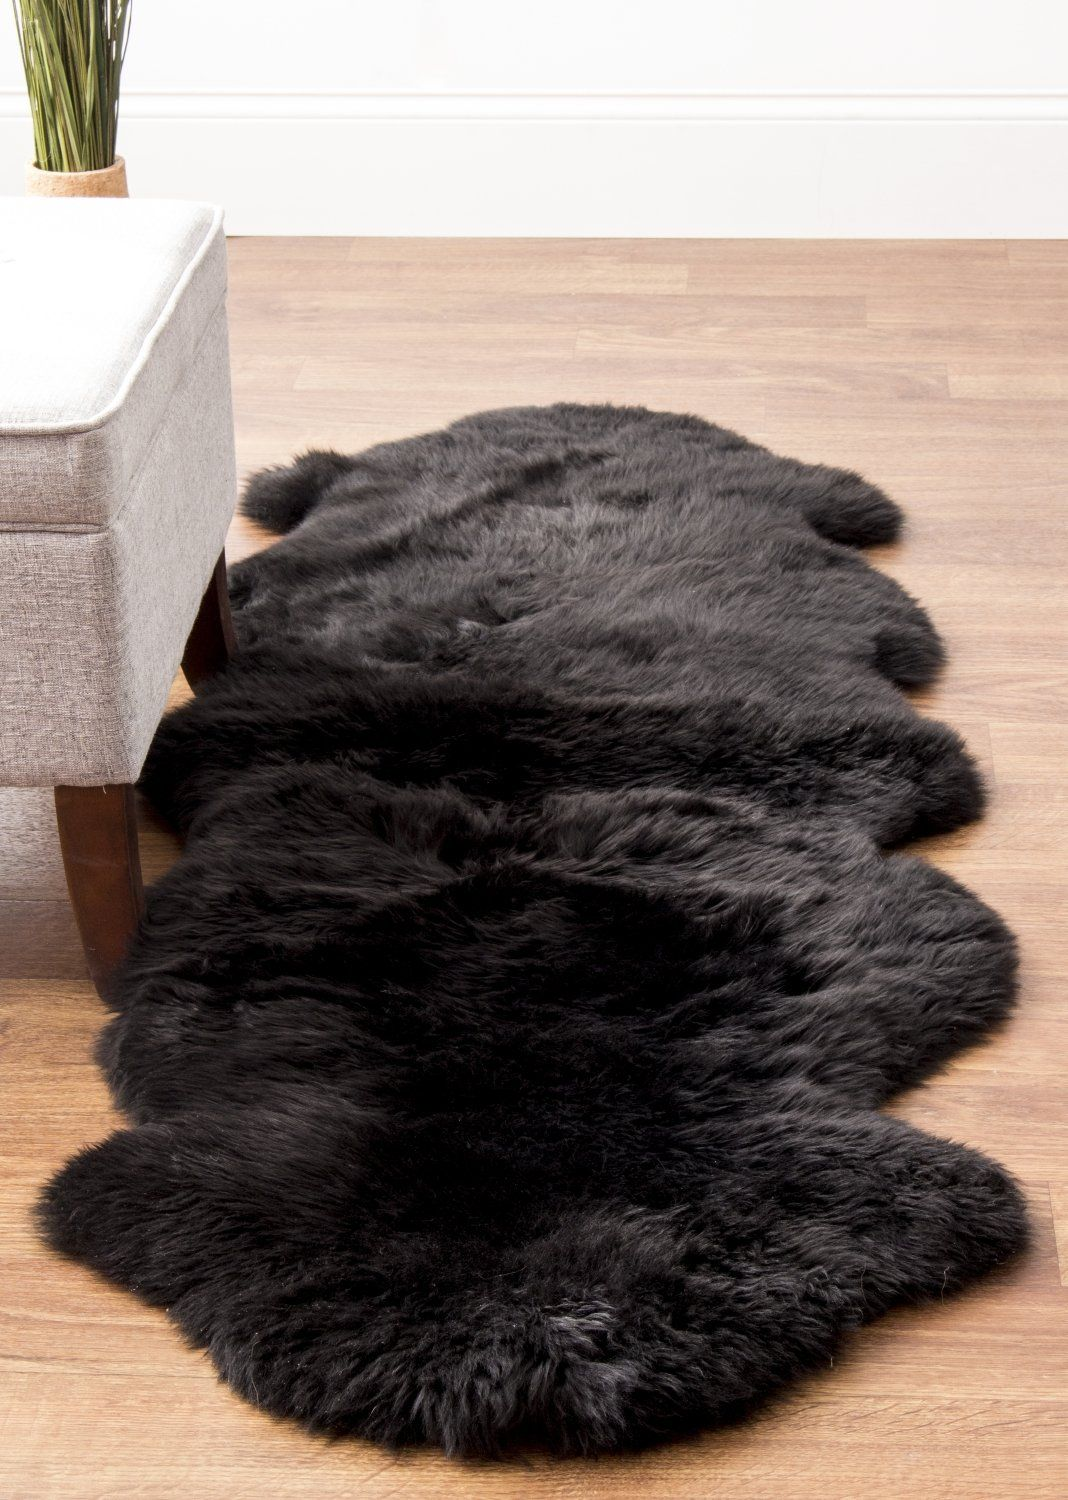 Pin By Tina Holden On Outfit 2 Deity Photoshoot Sheepskin Rug Rugs Cool Rugs